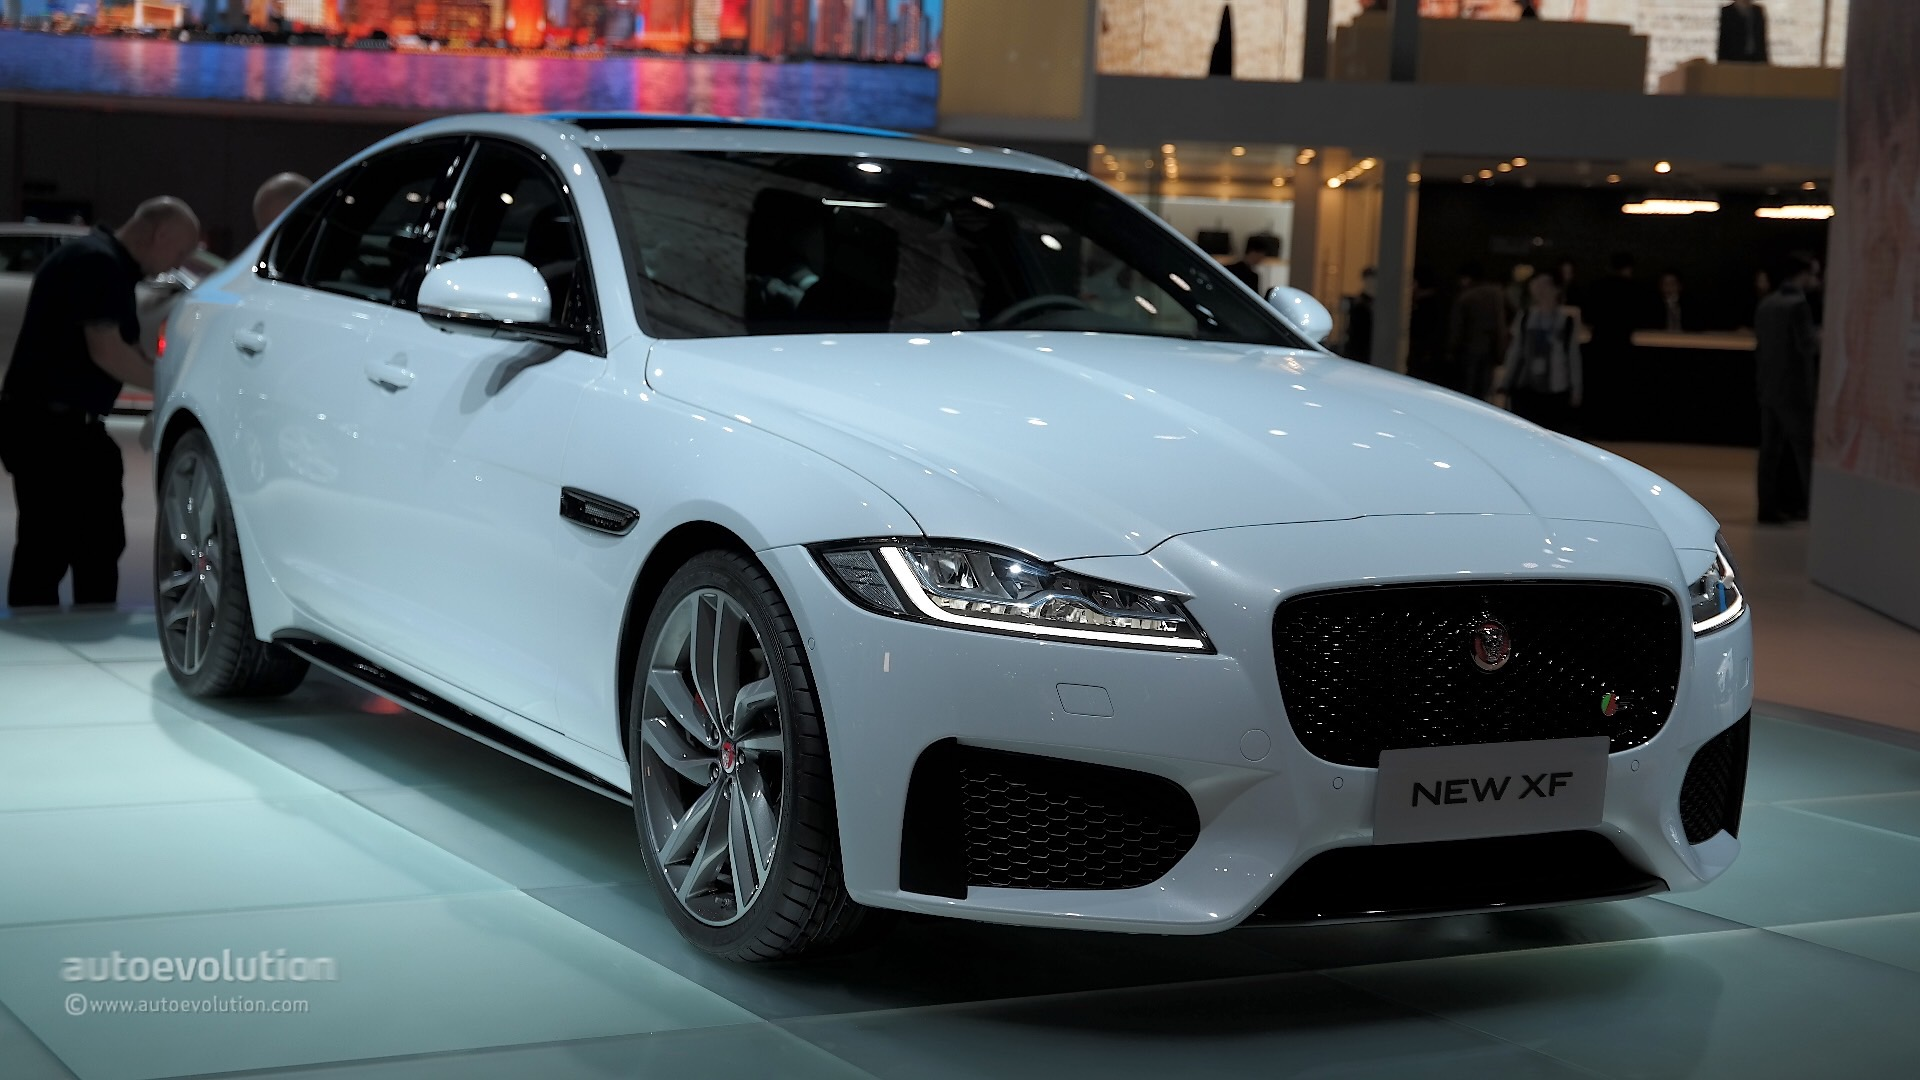 jaguar xf claims a piece of the chinese auto market in shanghai autoevolution. Black Bedroom Furniture Sets. Home Design Ideas